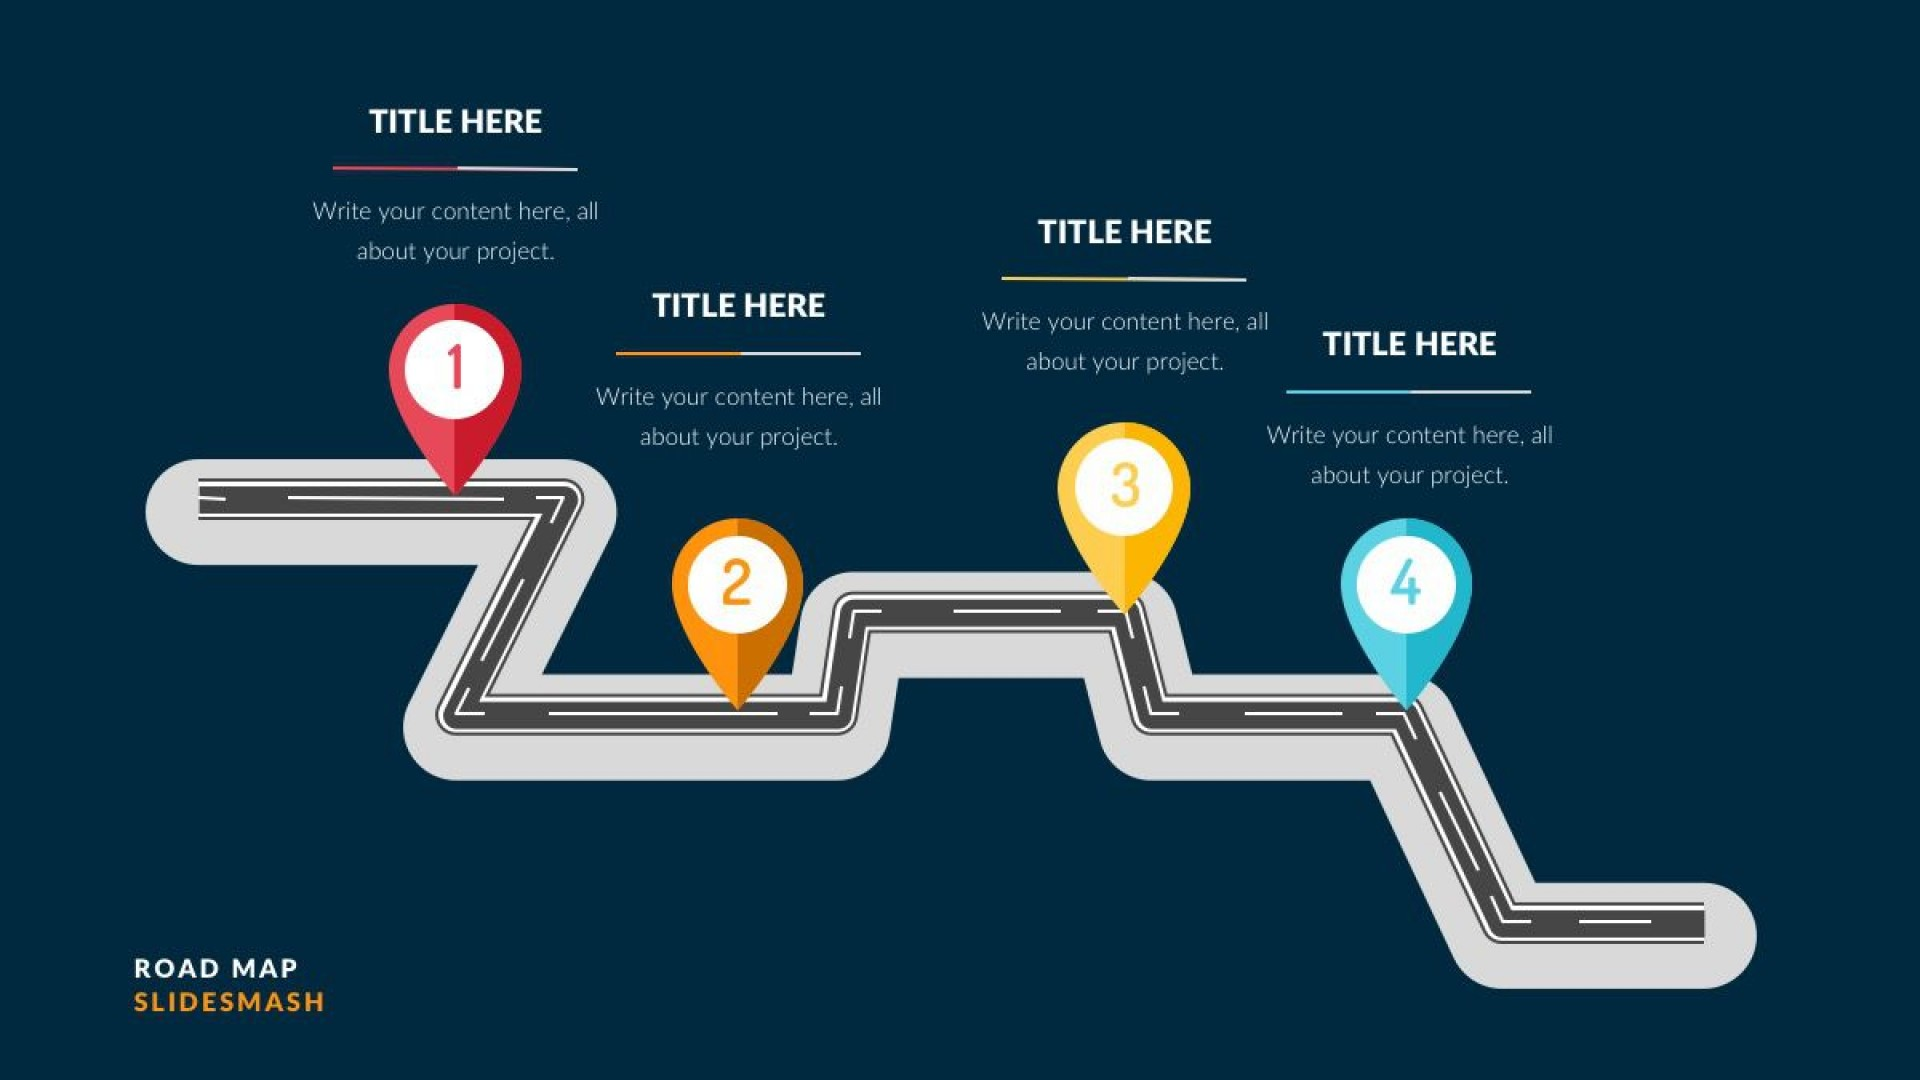 003 Breathtaking Road Map Template Powerpoint Picture  Roadmap Ppt Free Download Product1920